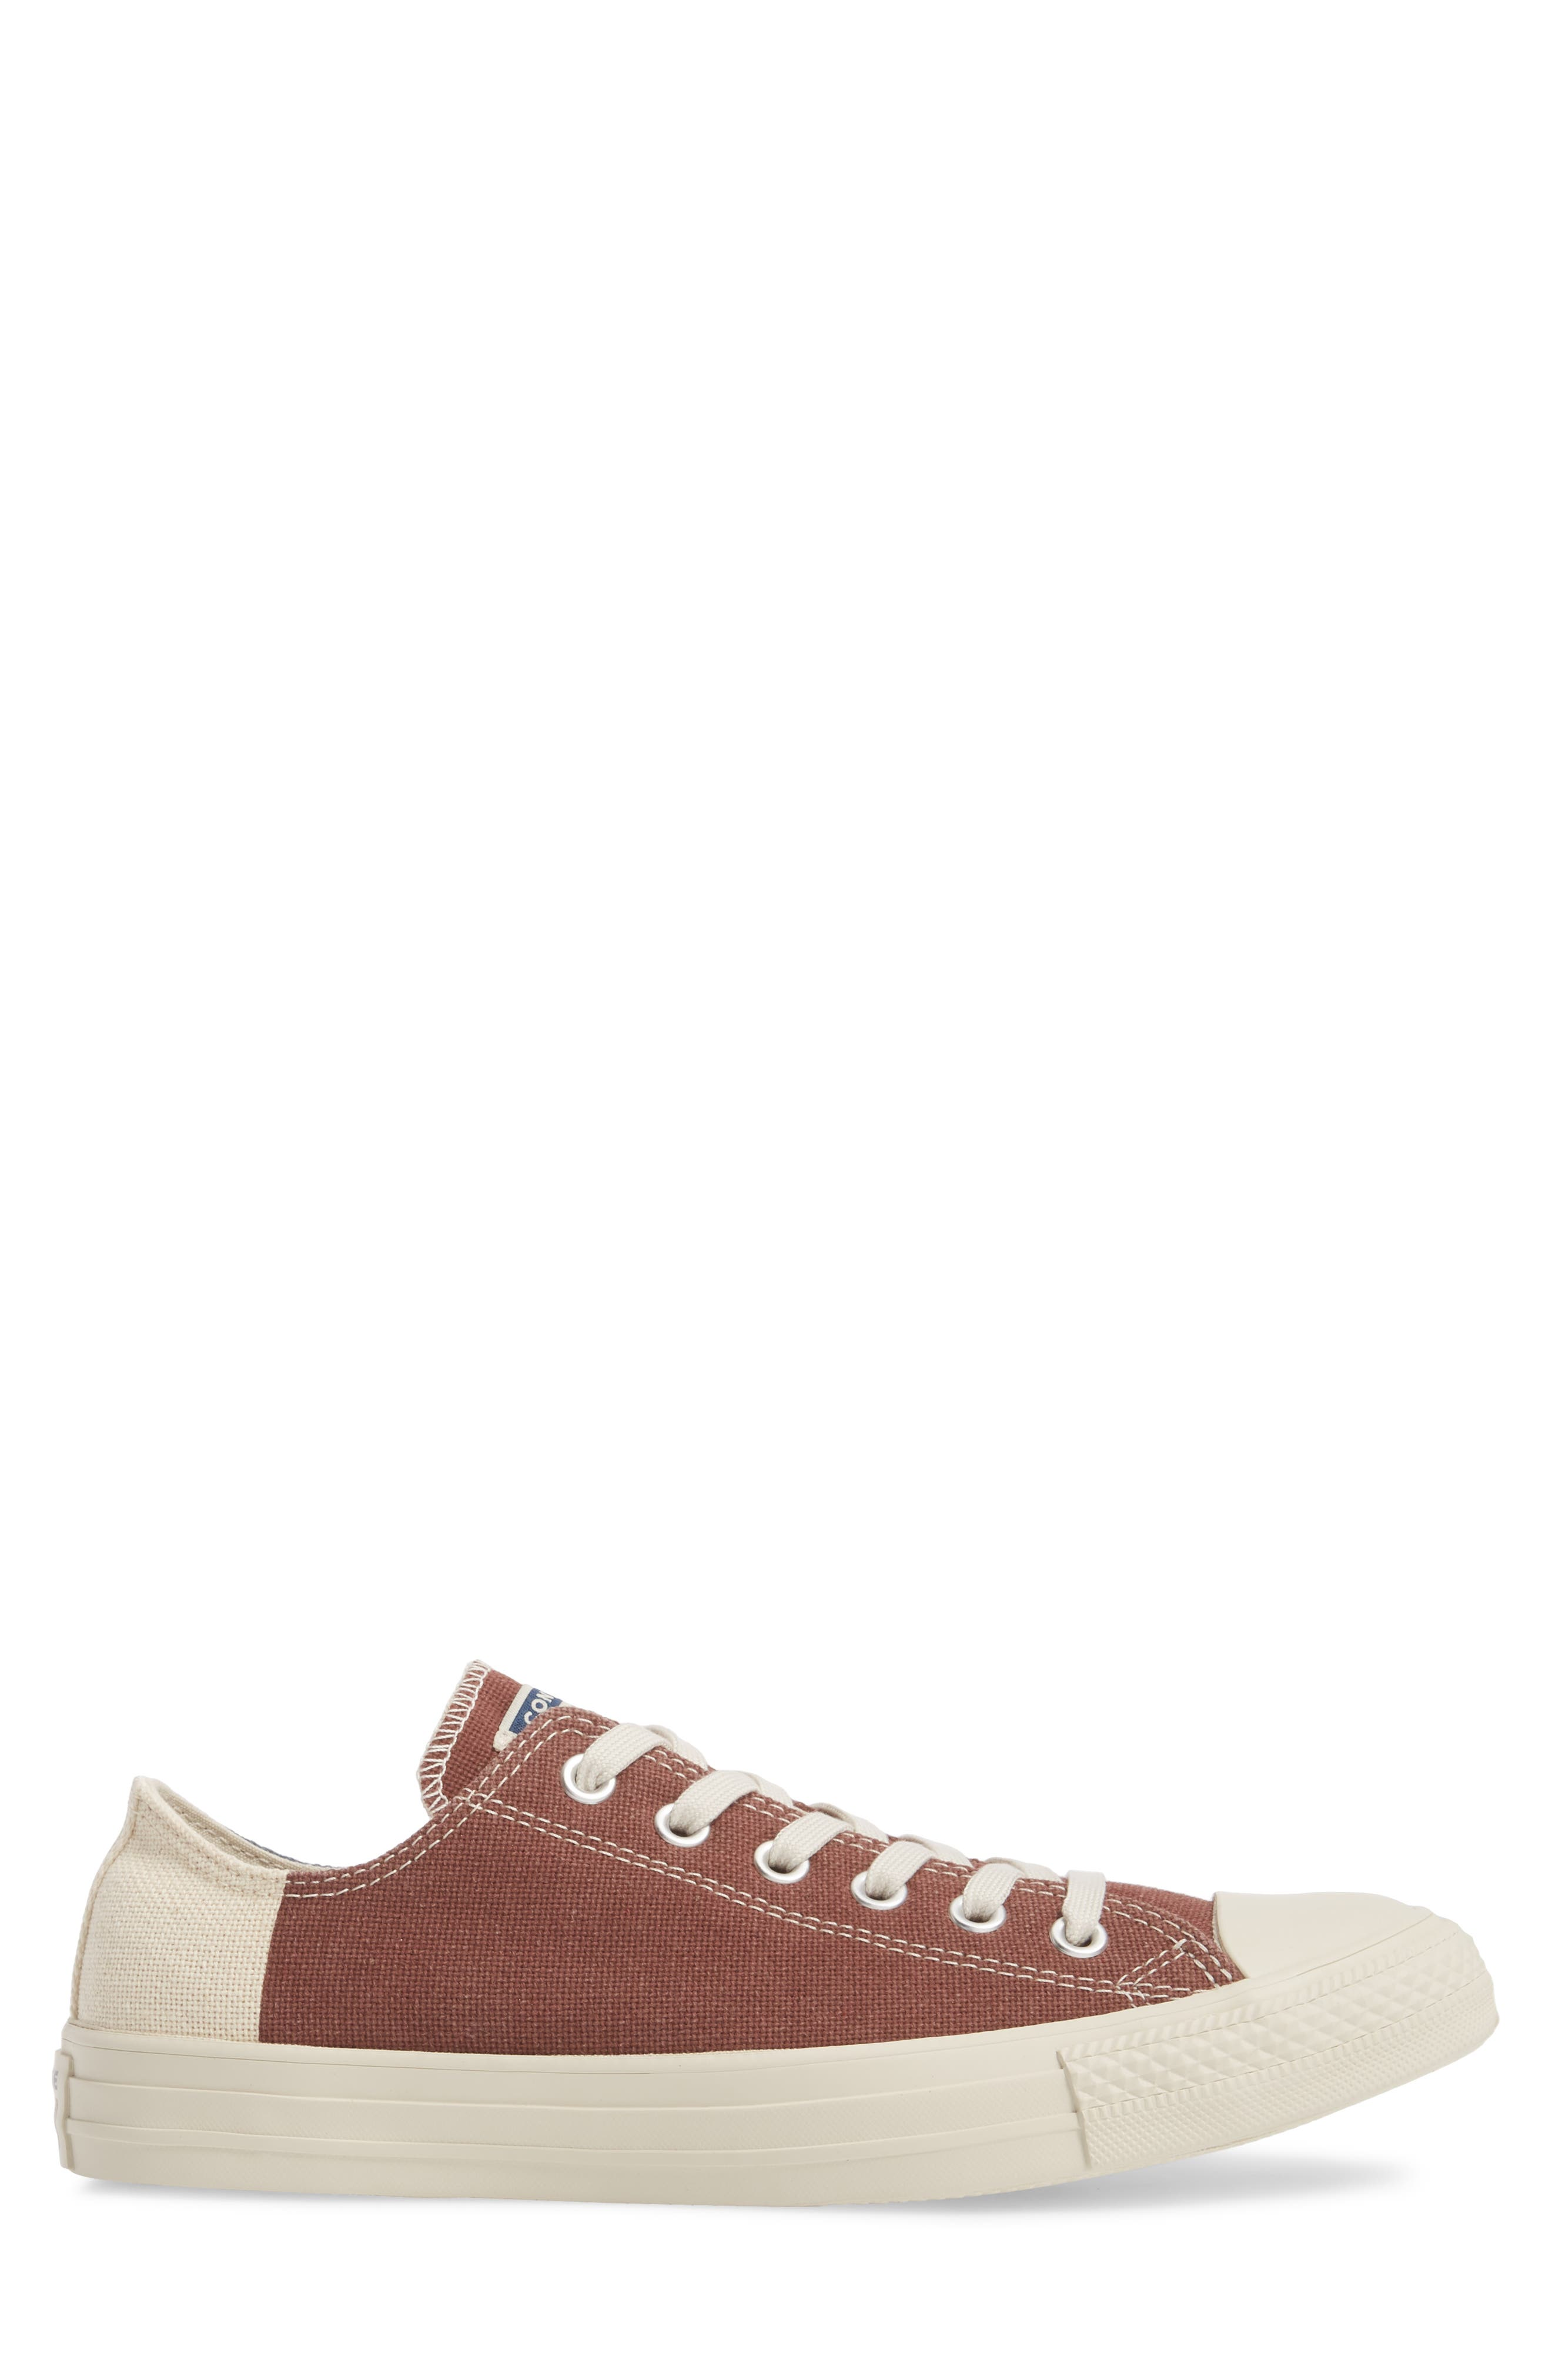 Chuck Taylor<sup>®</sup> All Star<sup>®</sup> Jute Americana Low Top Sneaker,                             Alternate thumbnail 3, color,                             Aegean Storm